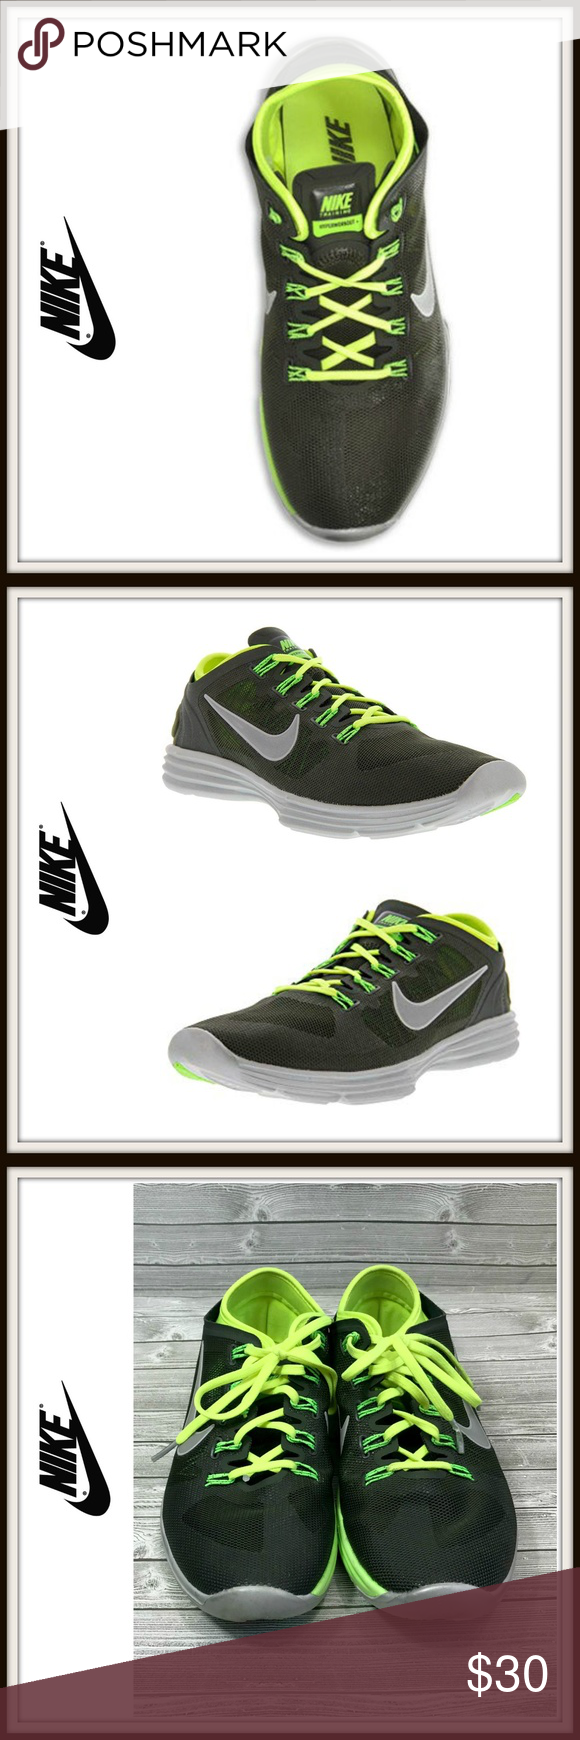 best service 1ad36 75c9c Nike Lunar Hyperworkout Xt Fitness Sneakers Shoes Name  Nike Lunar  Hyperworkout Xt Fitness Sneakers Sz  8 UPPER  Lightweight mesh with Flywire  technology ...